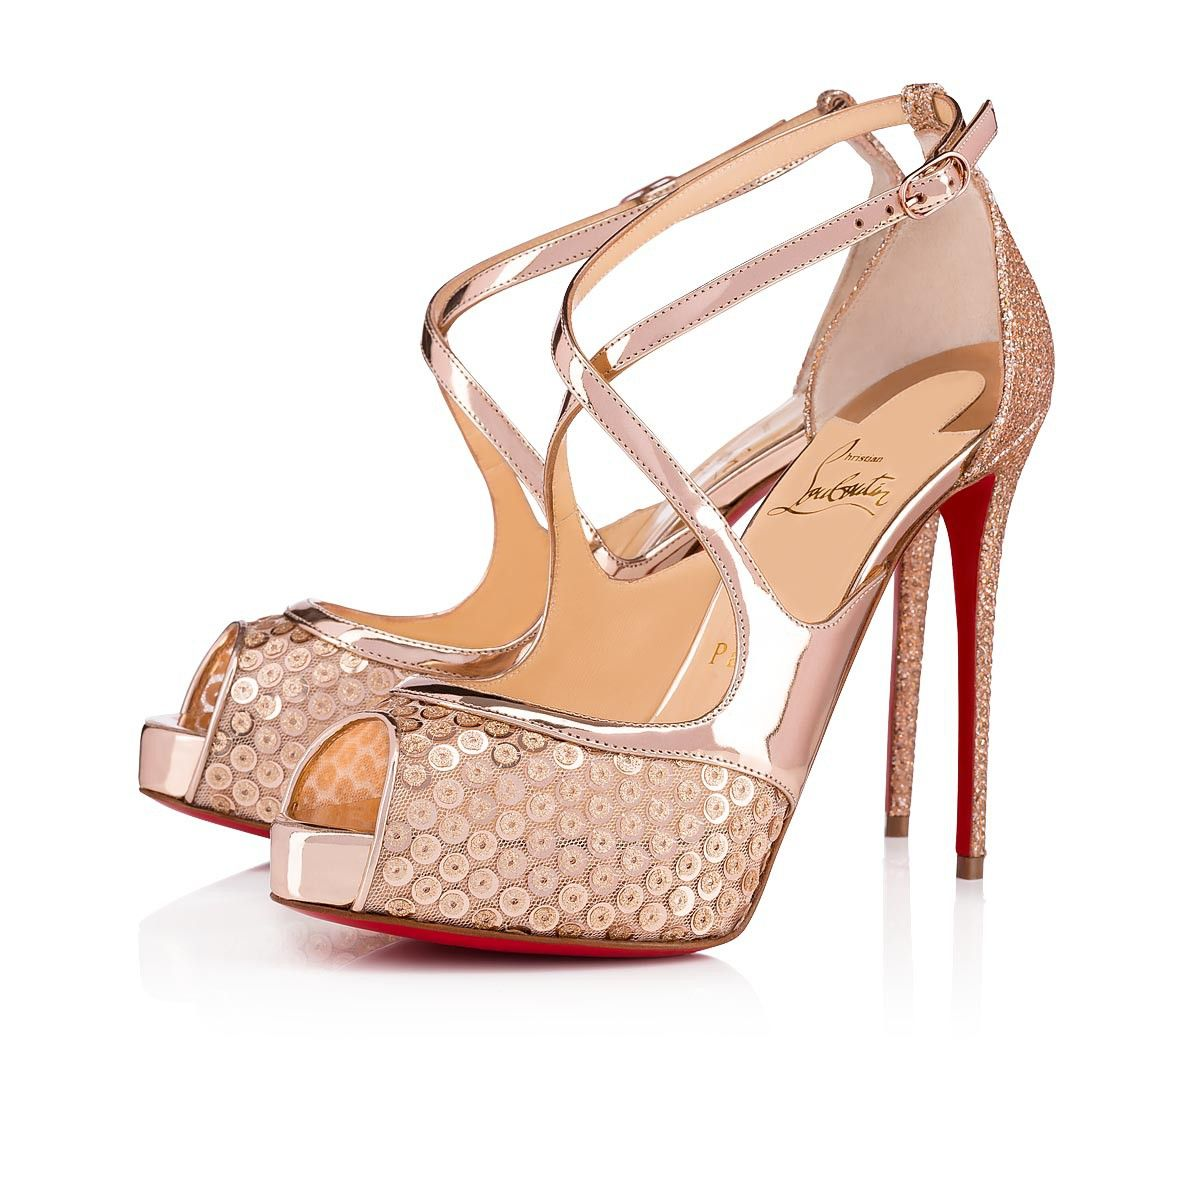 cd091ee531f4 Christian Louboutin United States Official Online Boutique - Mira Bella 120  Nude Glitter available online. Discover more Women Shoes by Christian  Louboutin